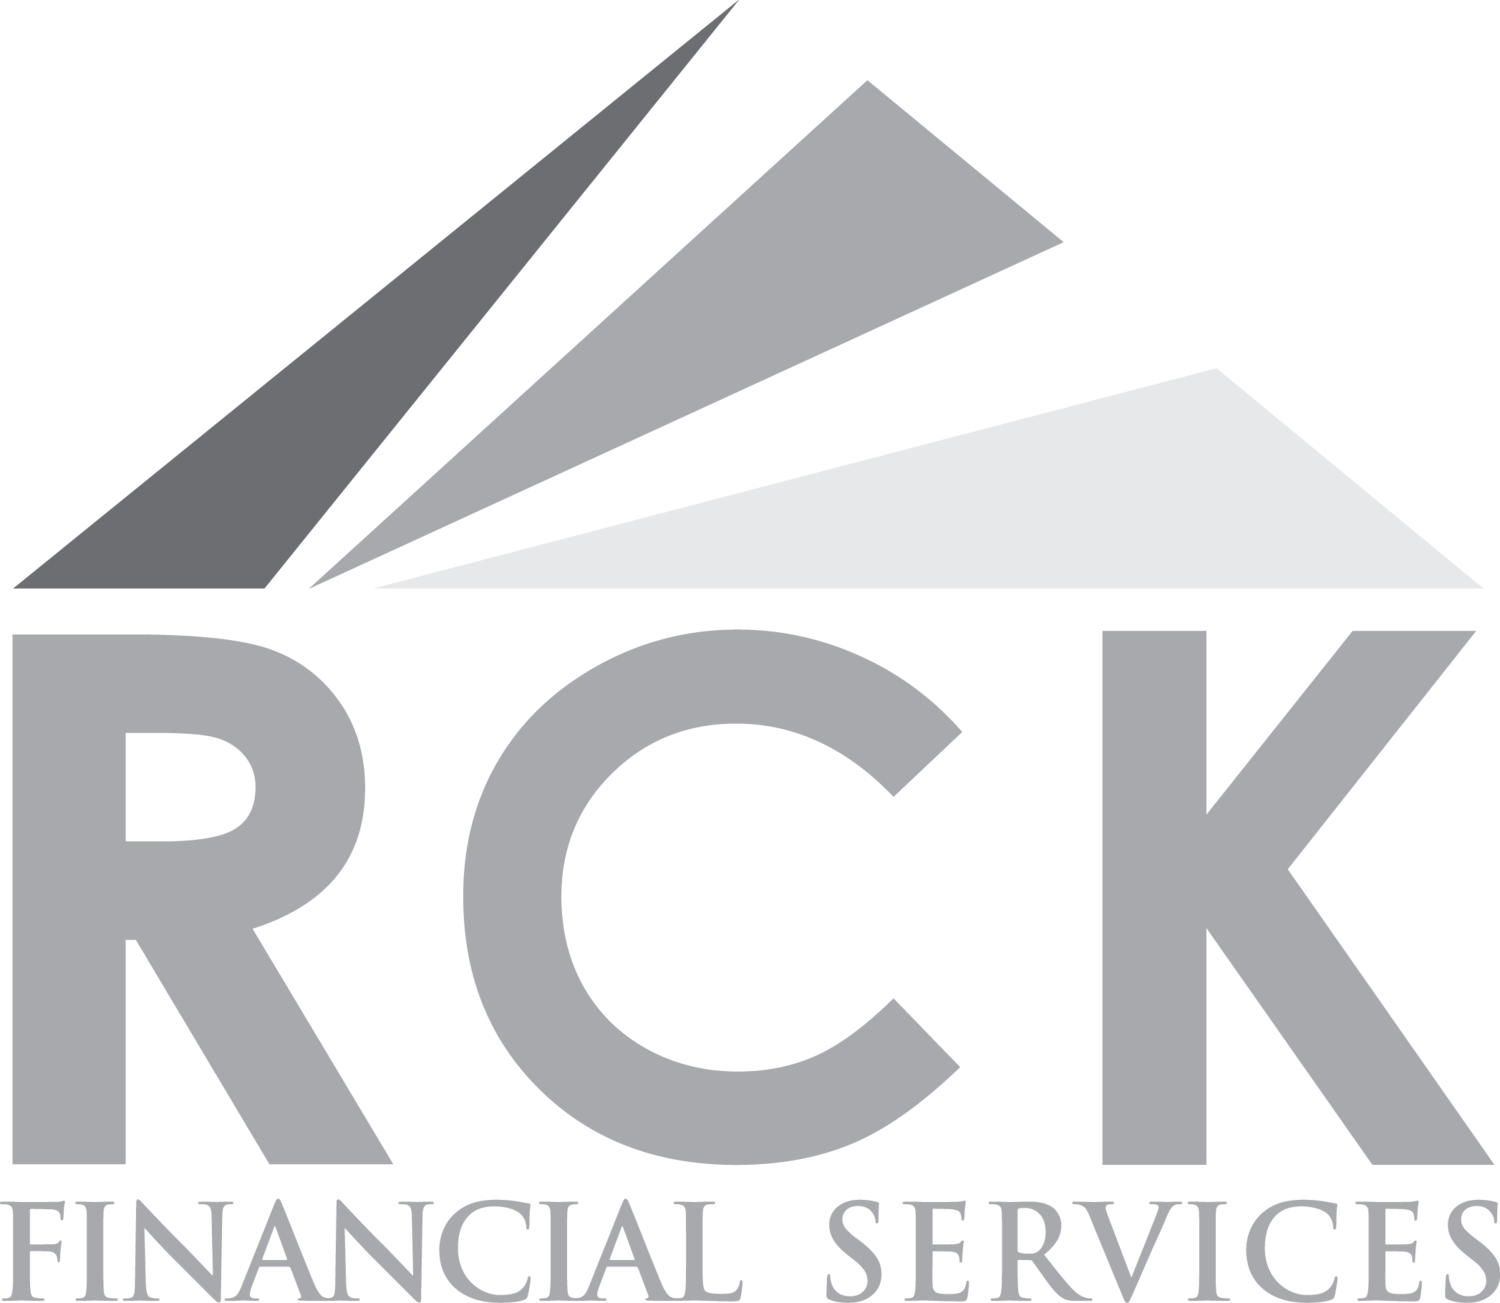 RCKFS - Car Loans, Business Loans & Finance